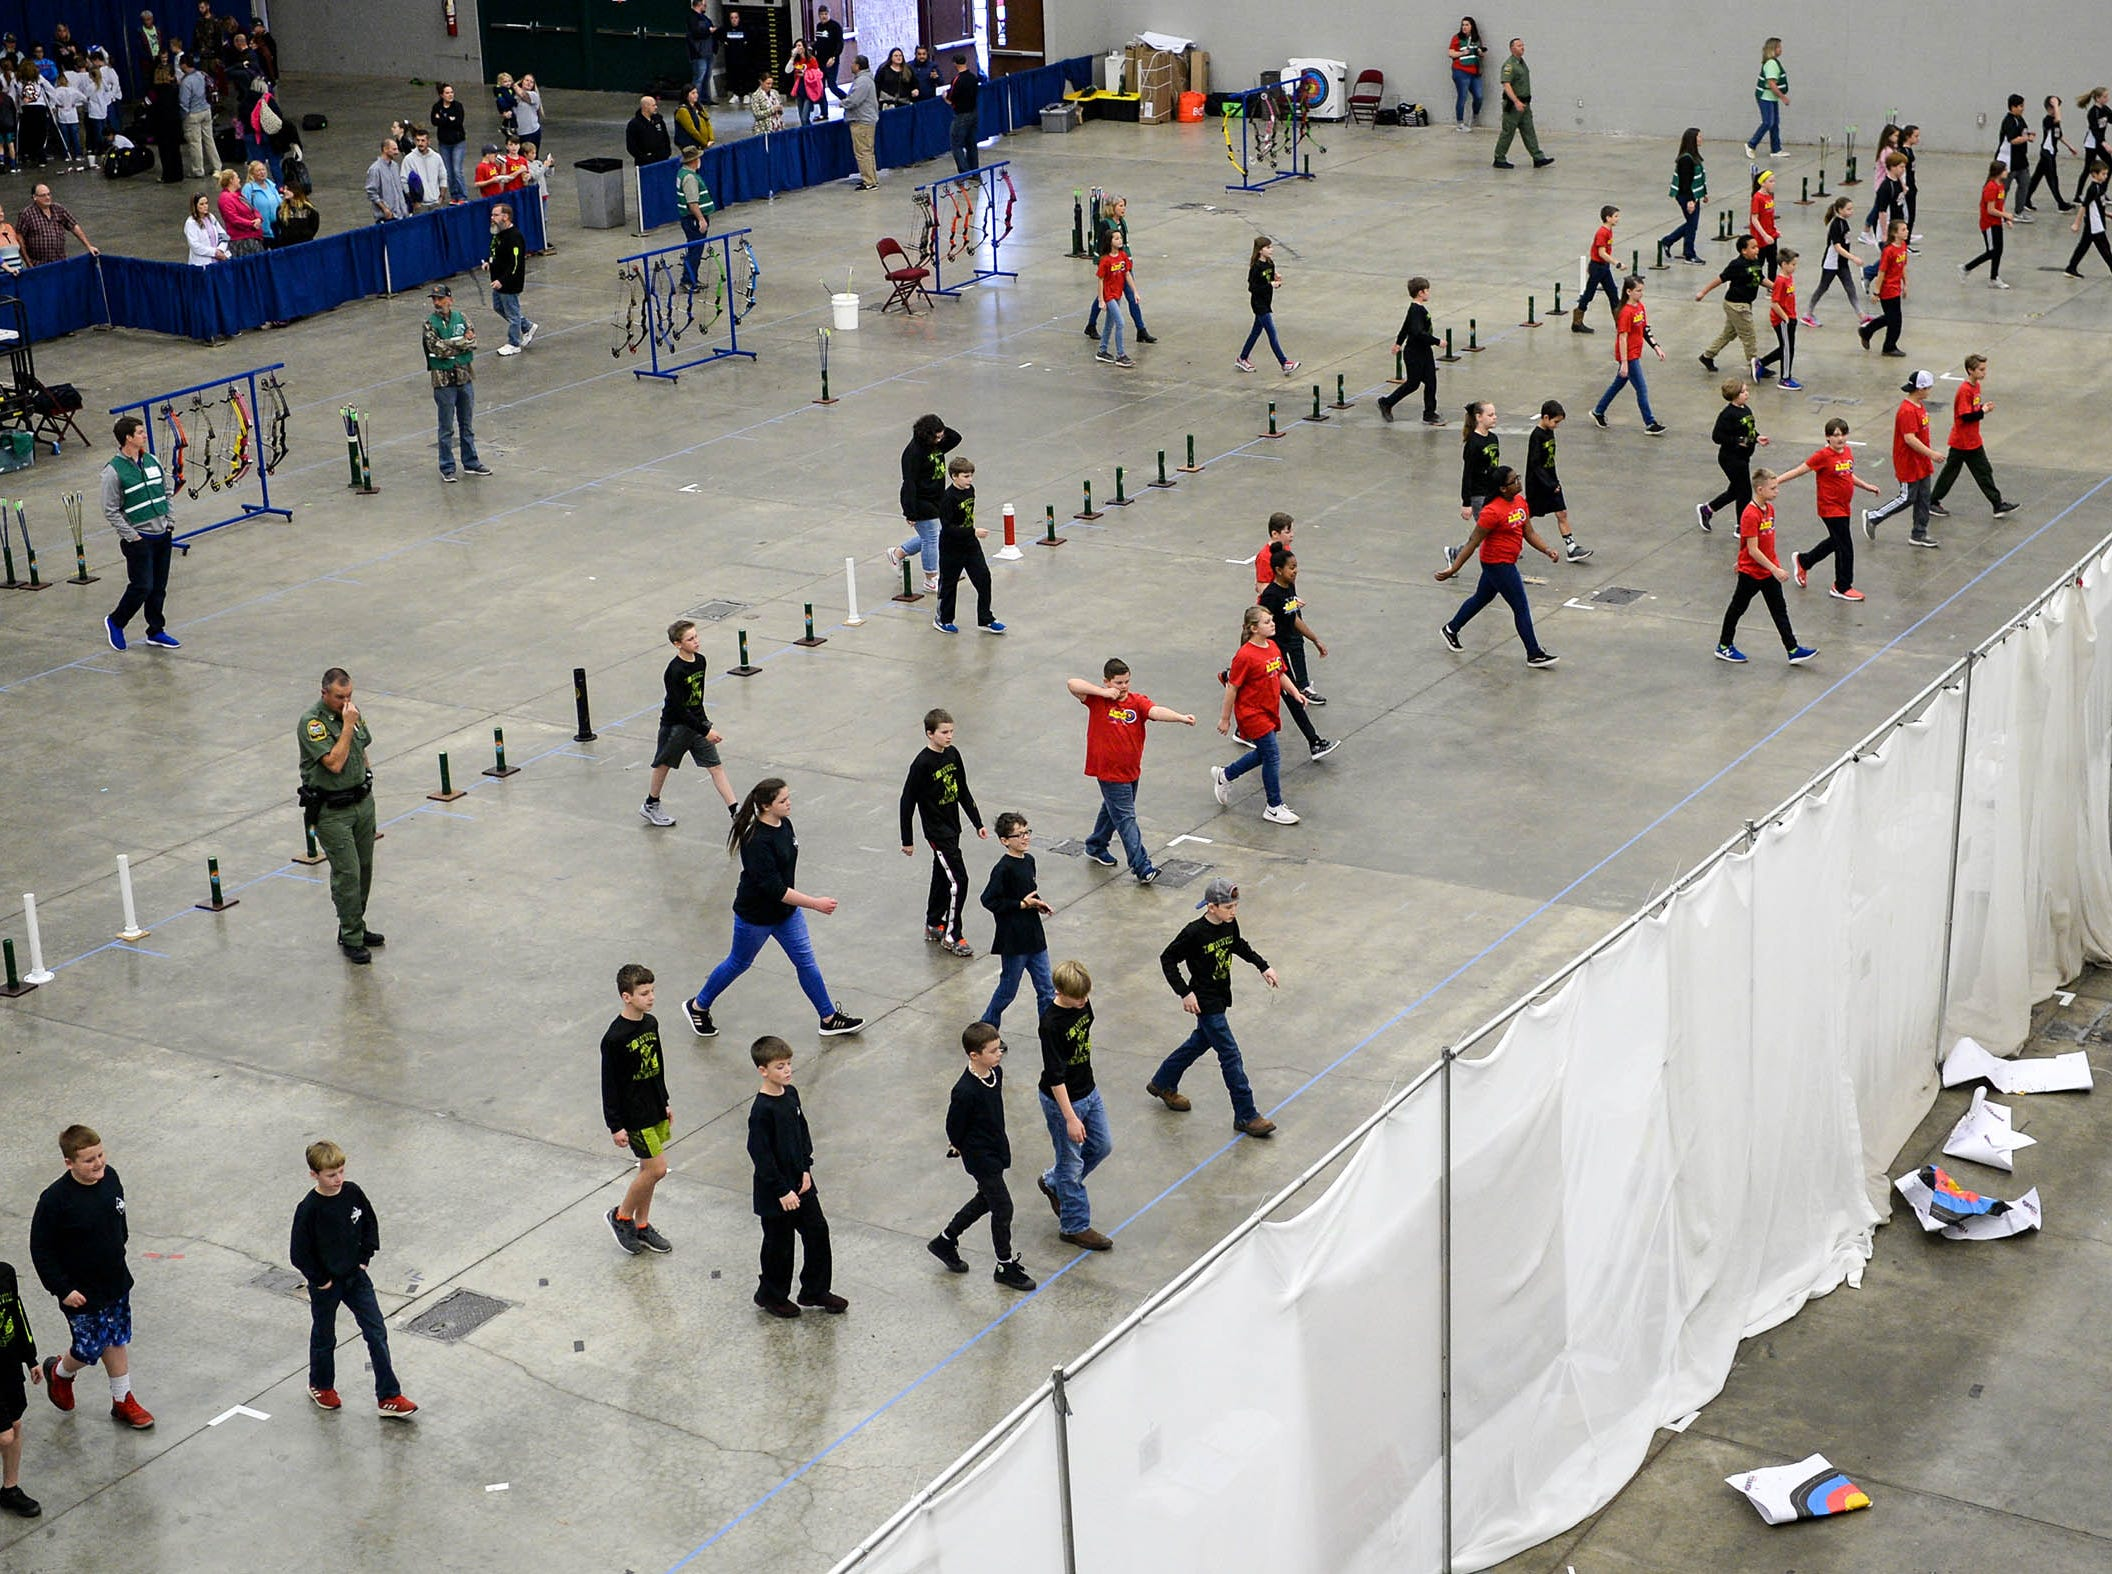 Students walk safely toward their arrows shot on targets during the South Carolina Department of Natural Resources regional National Archery in the Schools Program (NASP) regional competition at the Anderson Civic Center Wednesday.